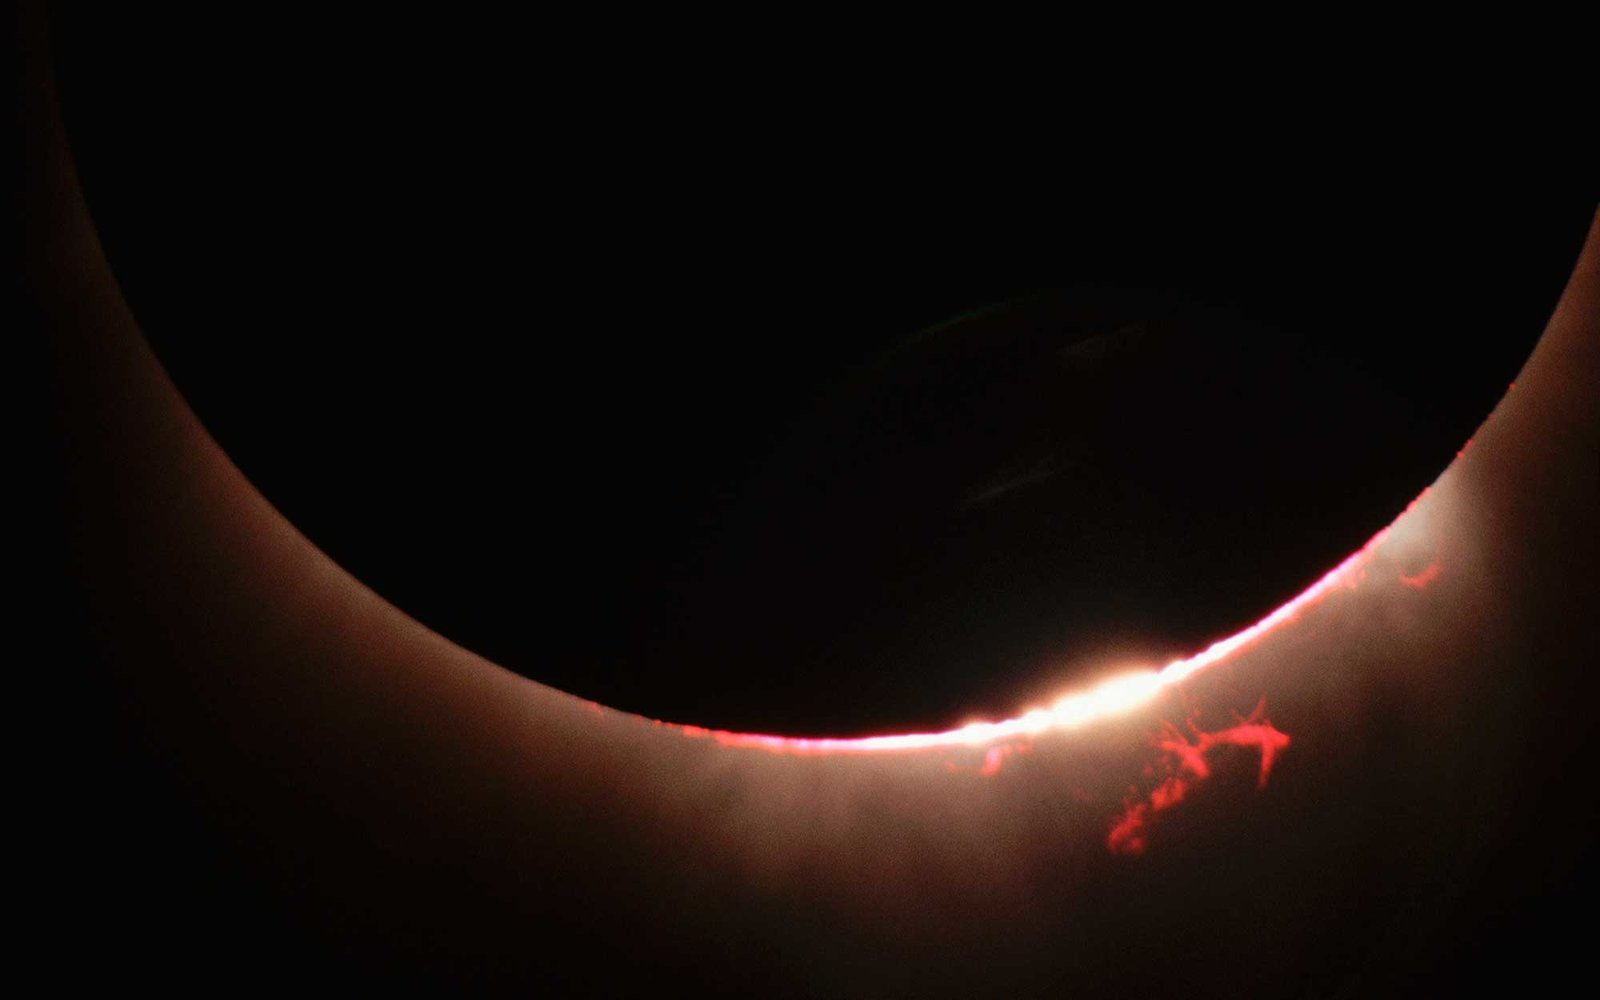 A close-up view of the Sun's disk during a total eclipse reveals fiery solar prominences. | View from: Mauna Kea Science Reserve.   (Photo by Roger Ressmeyer/Corbis/VCG via Getty Images)